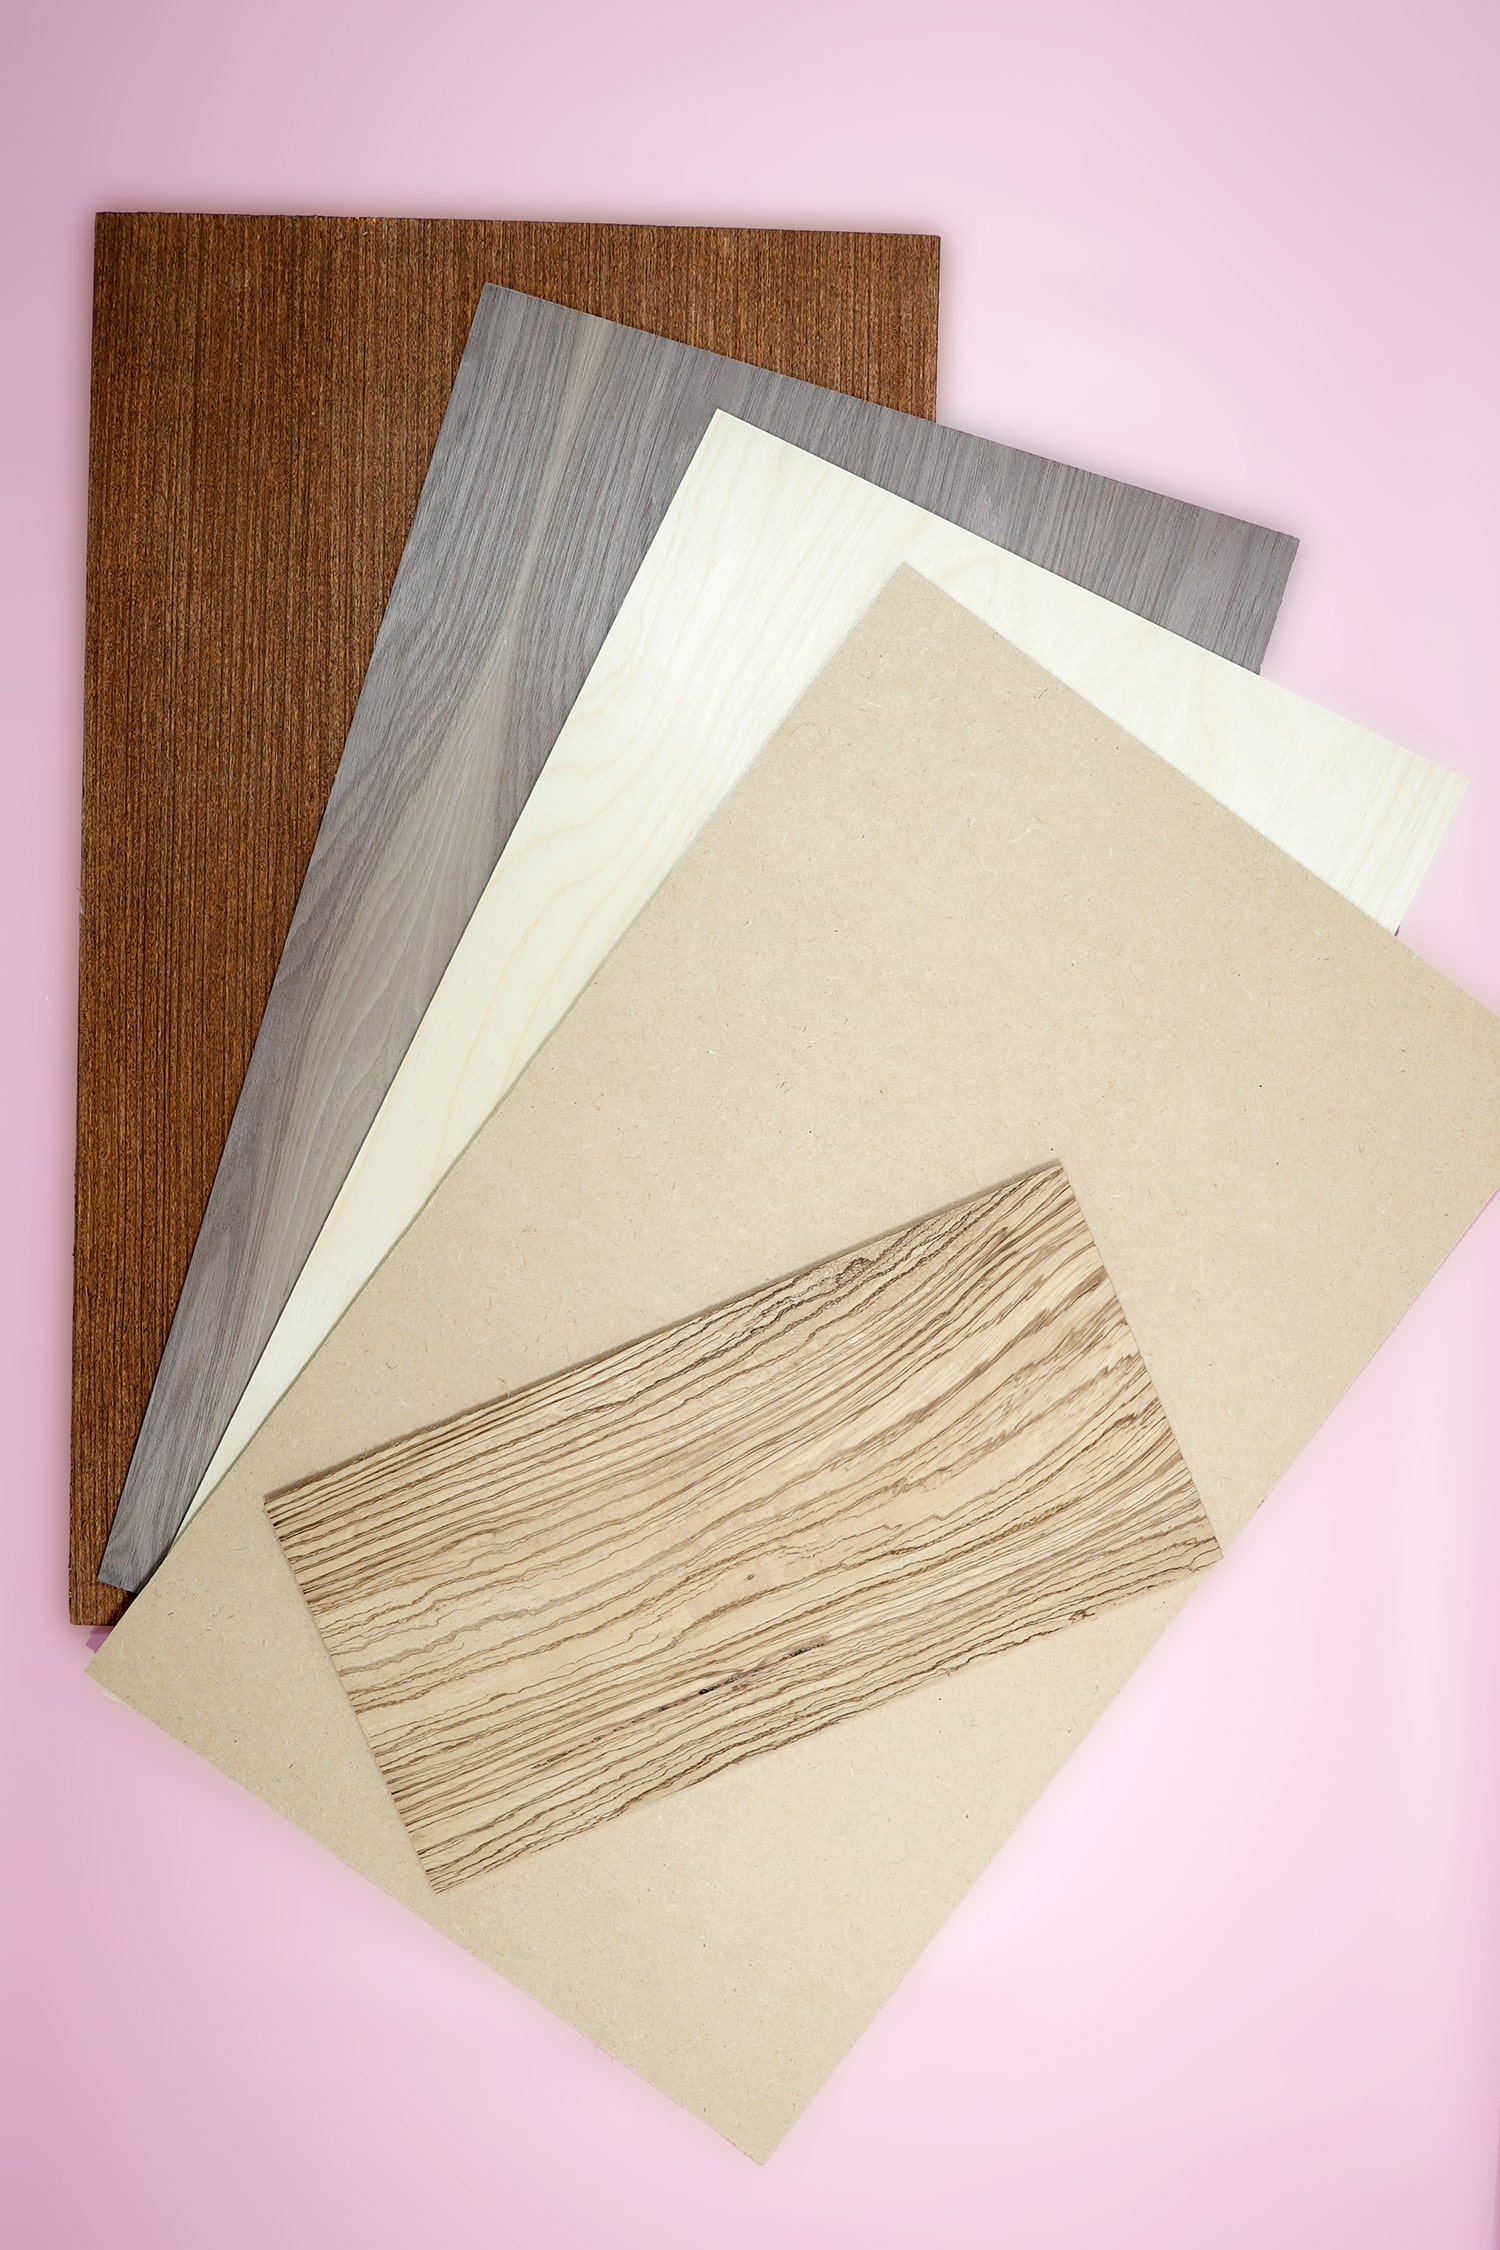 Five different types of wood sheets on a pink background